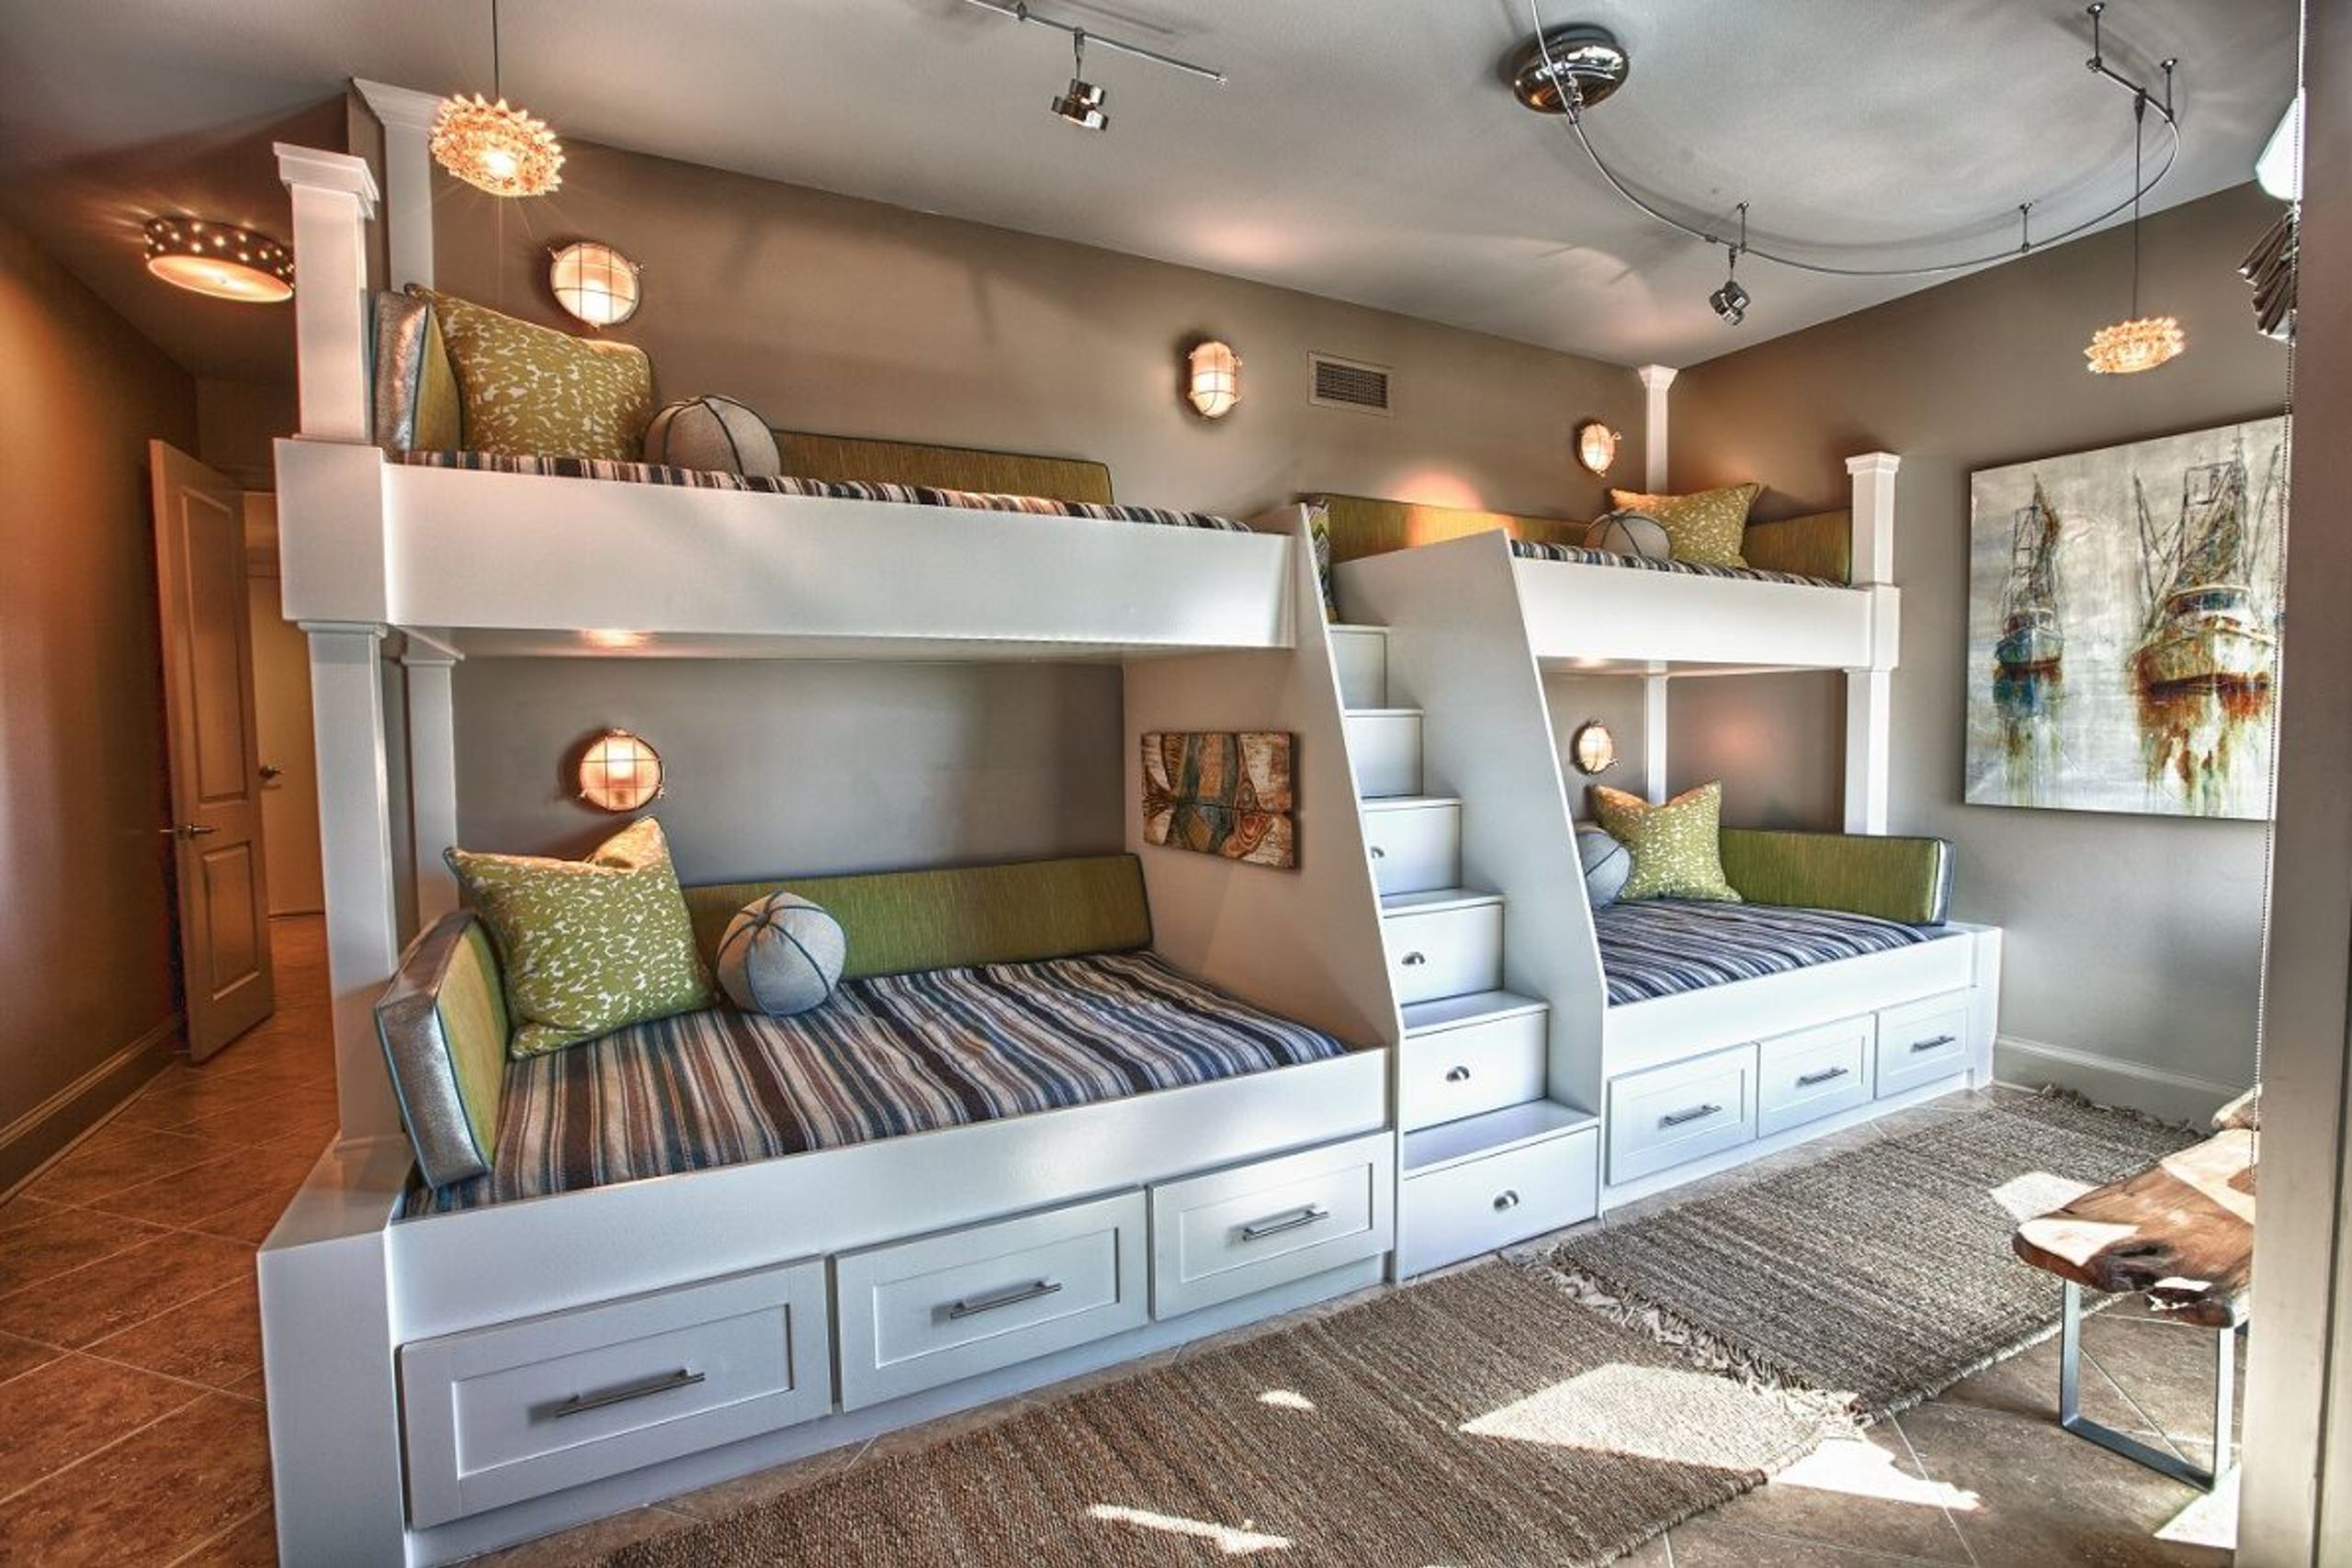 Would you like a guest bedroom like this?